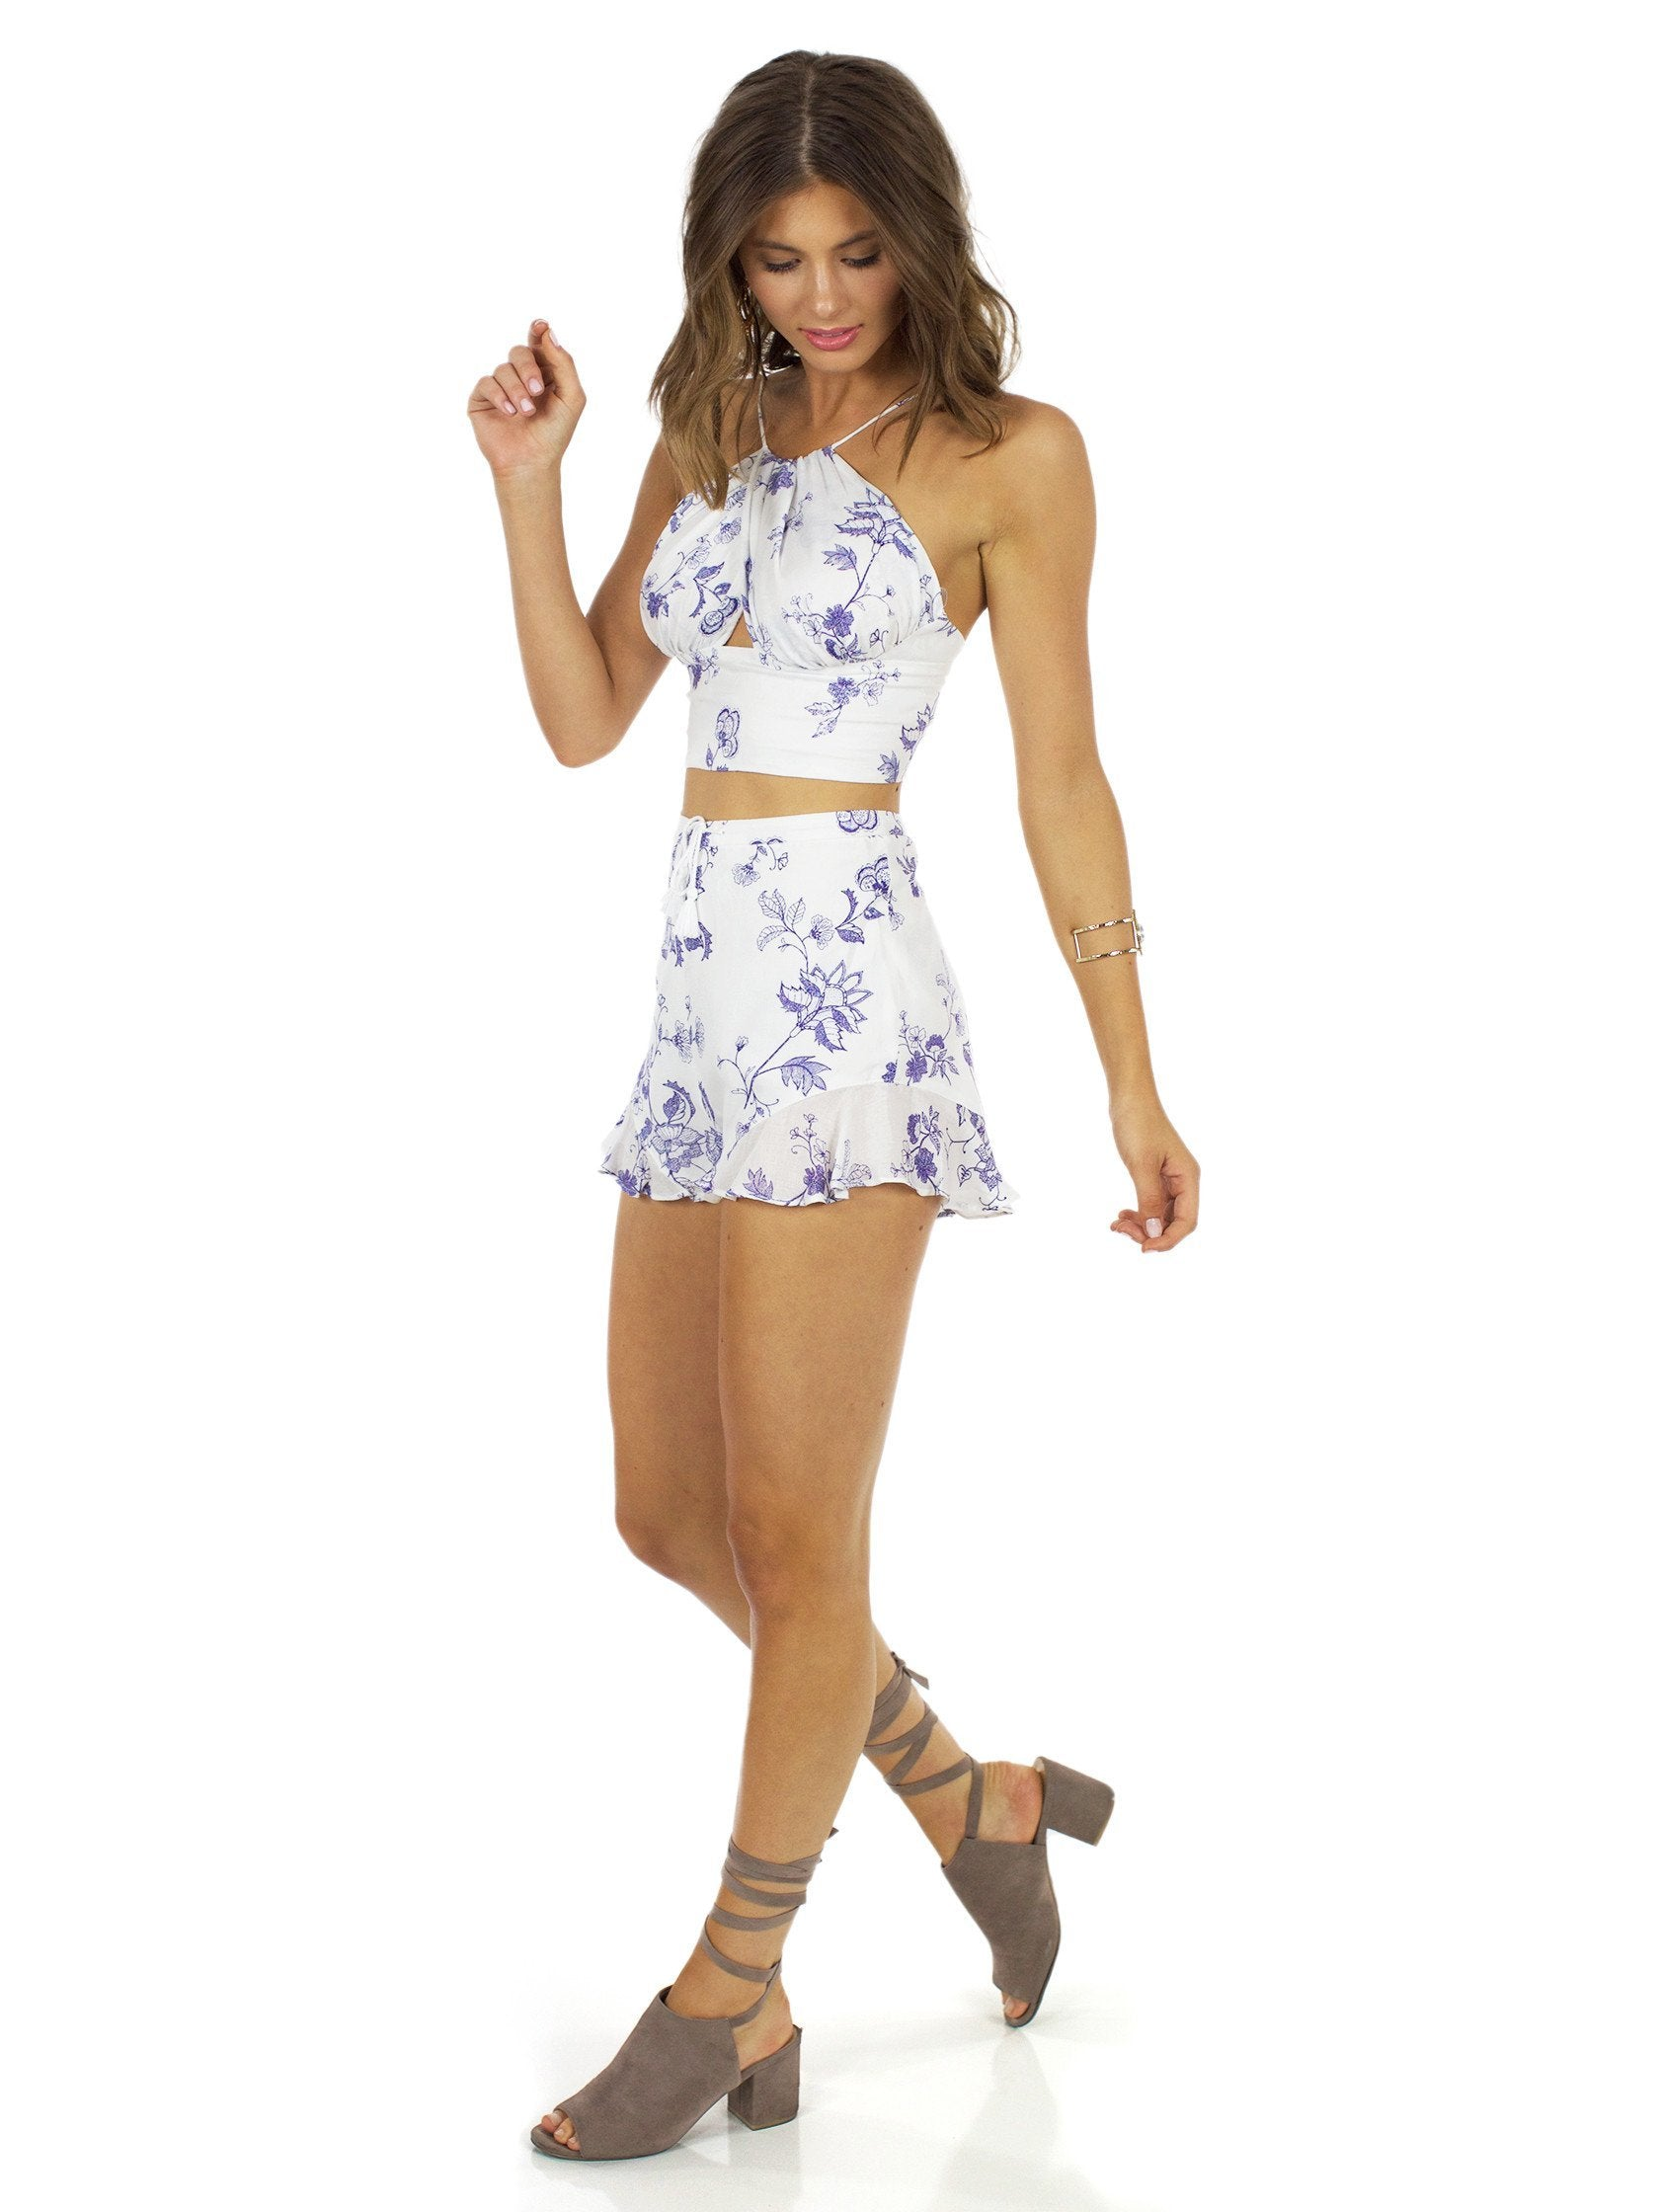 Girl outfit in a two piece rental from The Jetset Diaries called Zulu Two-piece Set